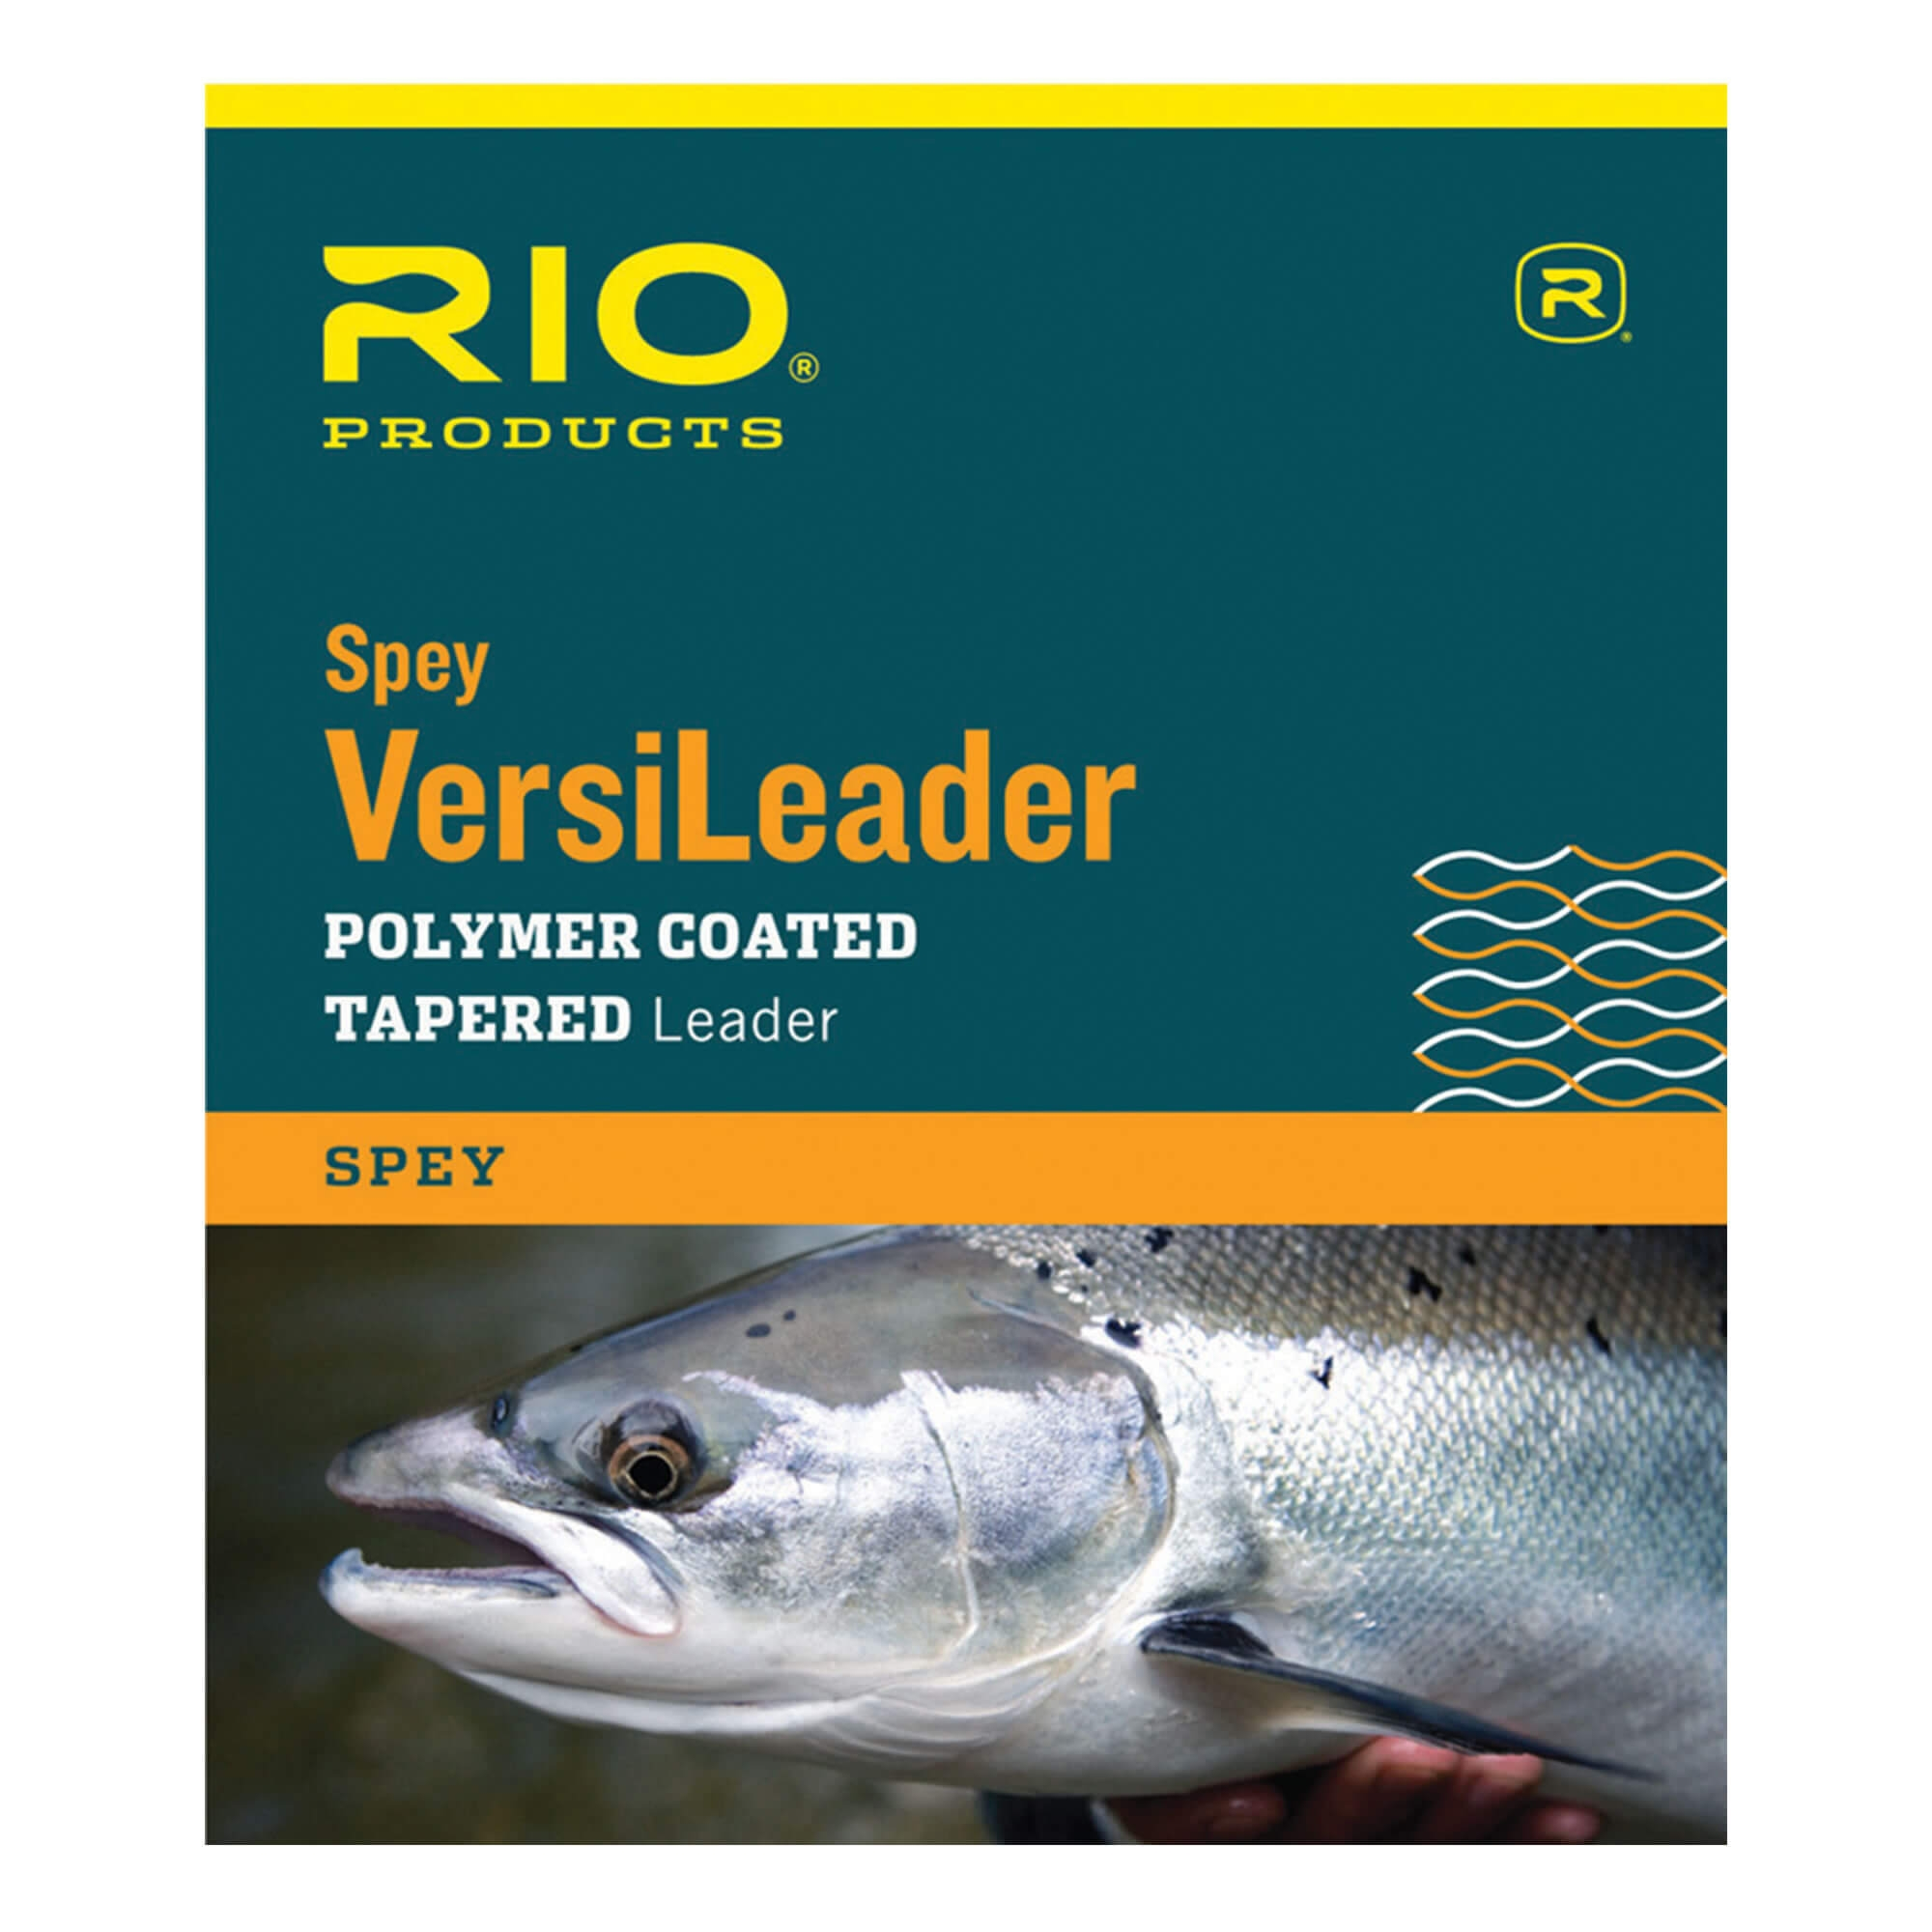 Polymer Coated Tapered Leader Spey Versileader